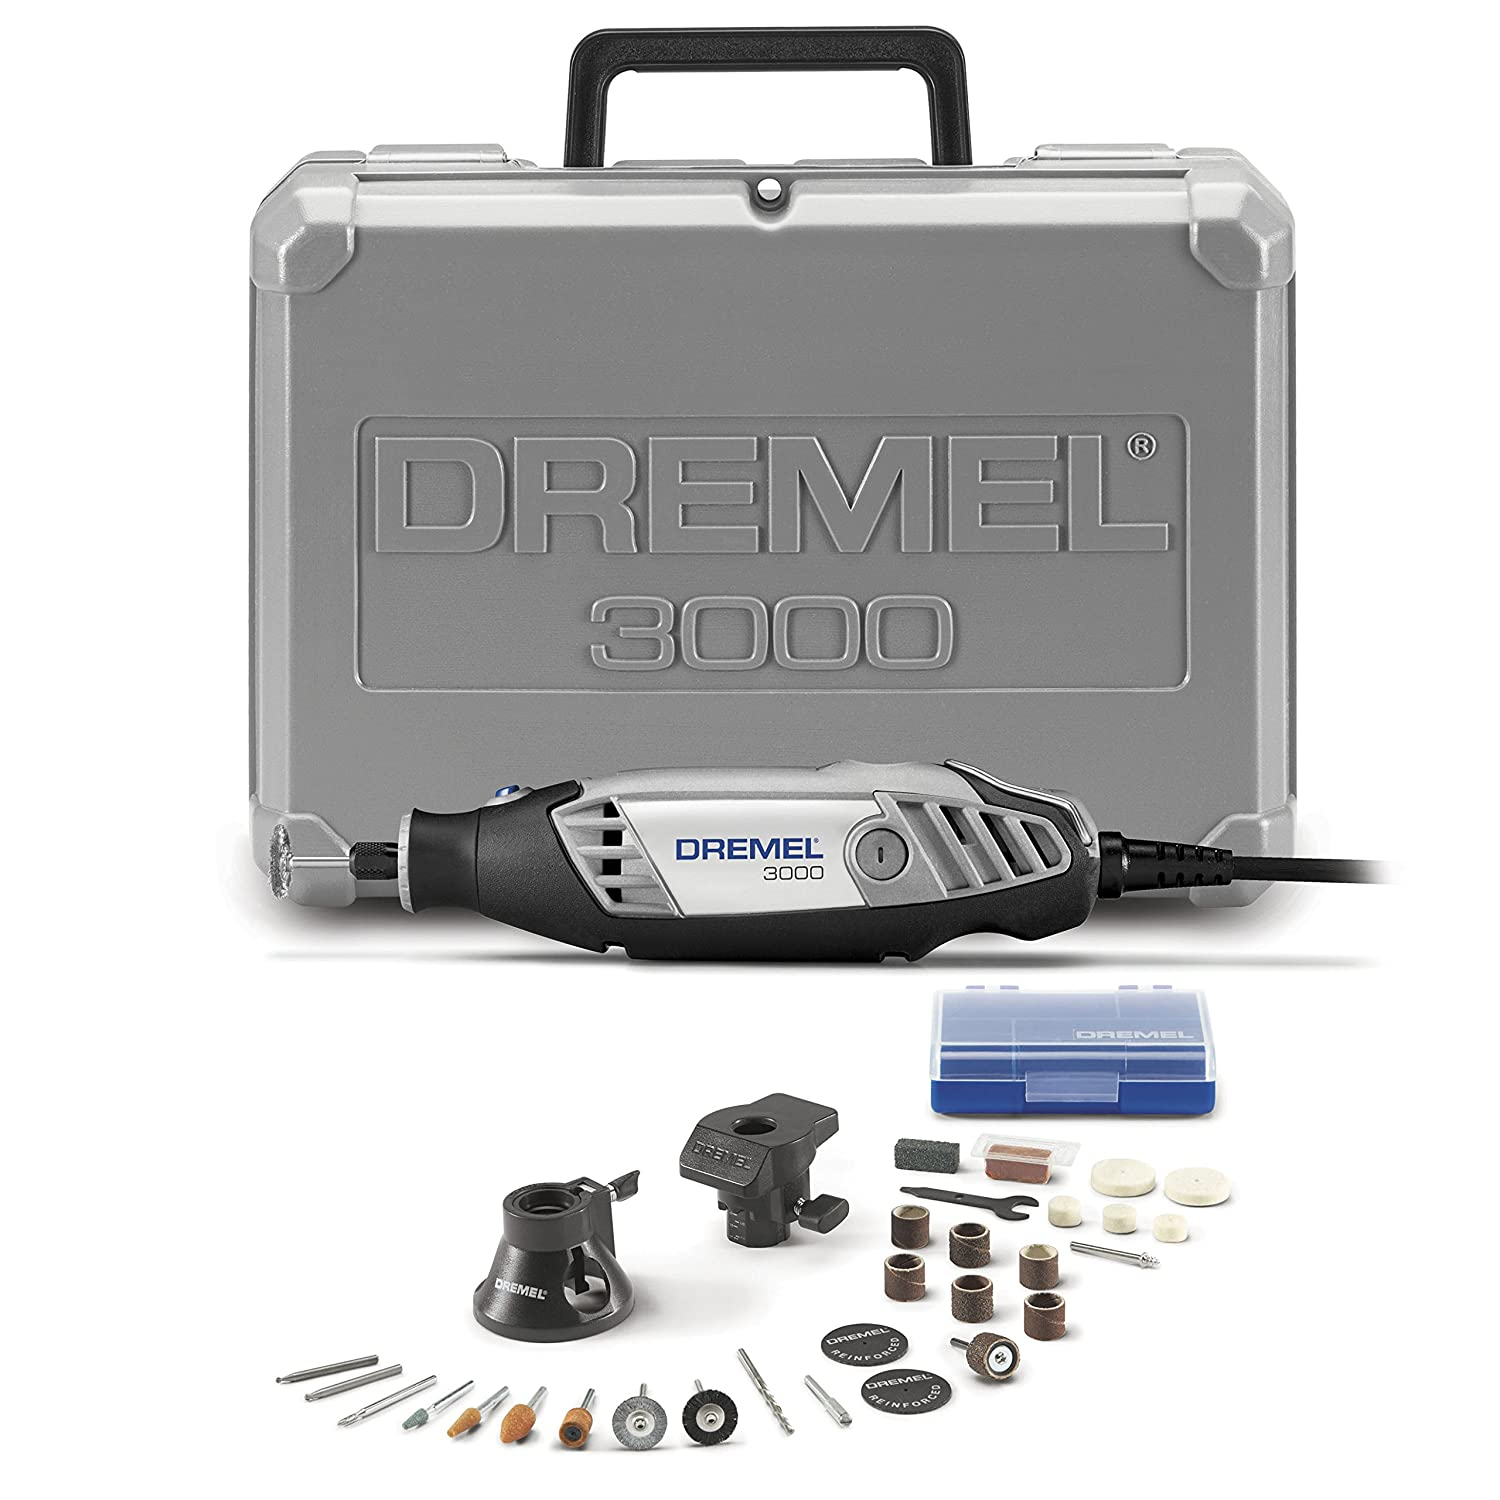 Dremel 3000-2 28 Variable Speed Rotary Tool Kit- 2 Attachments 28 Accessories- Grinder, Sander, Polisher, Router, and Engraver- Perfect for Routing, Metal Cutting, Wood Carving, and Polishing